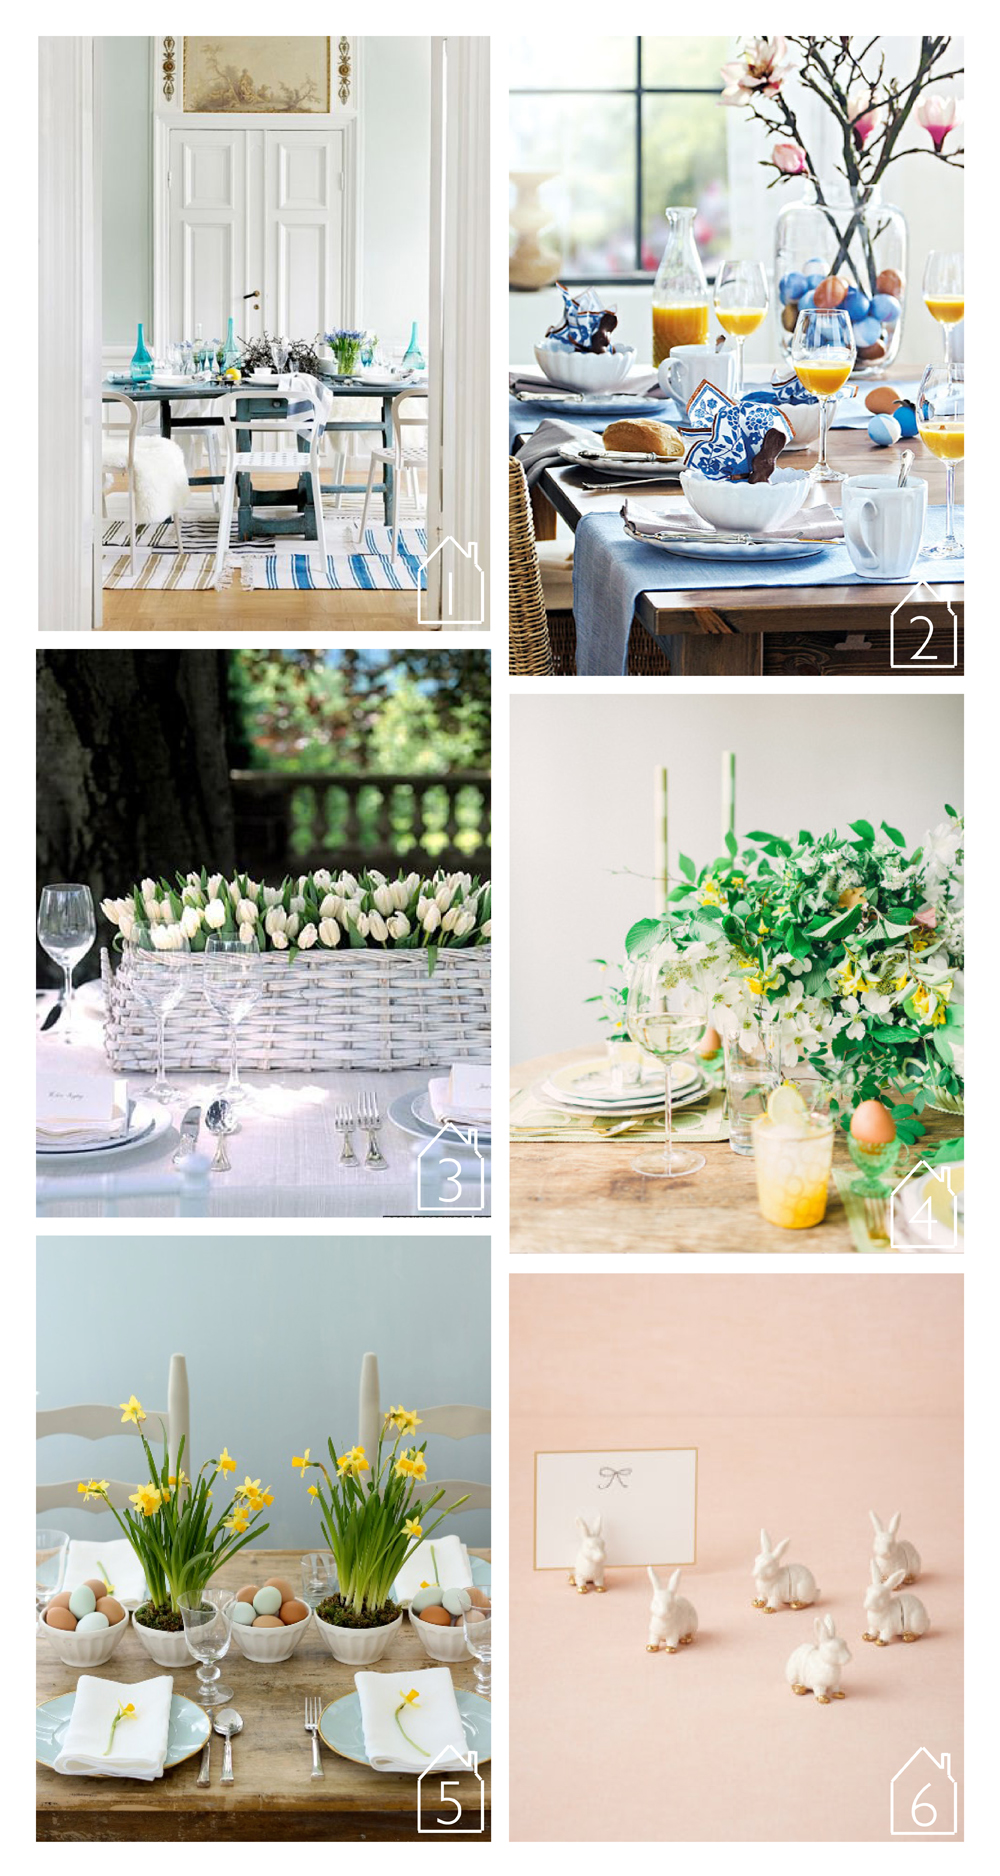 1. source unknown  2. via  Daily Dream Decor   3. via  Martha Stewart   4. via  Style Me Pretty Living   5. via  Simply Chic Events   6. via  BHLDN